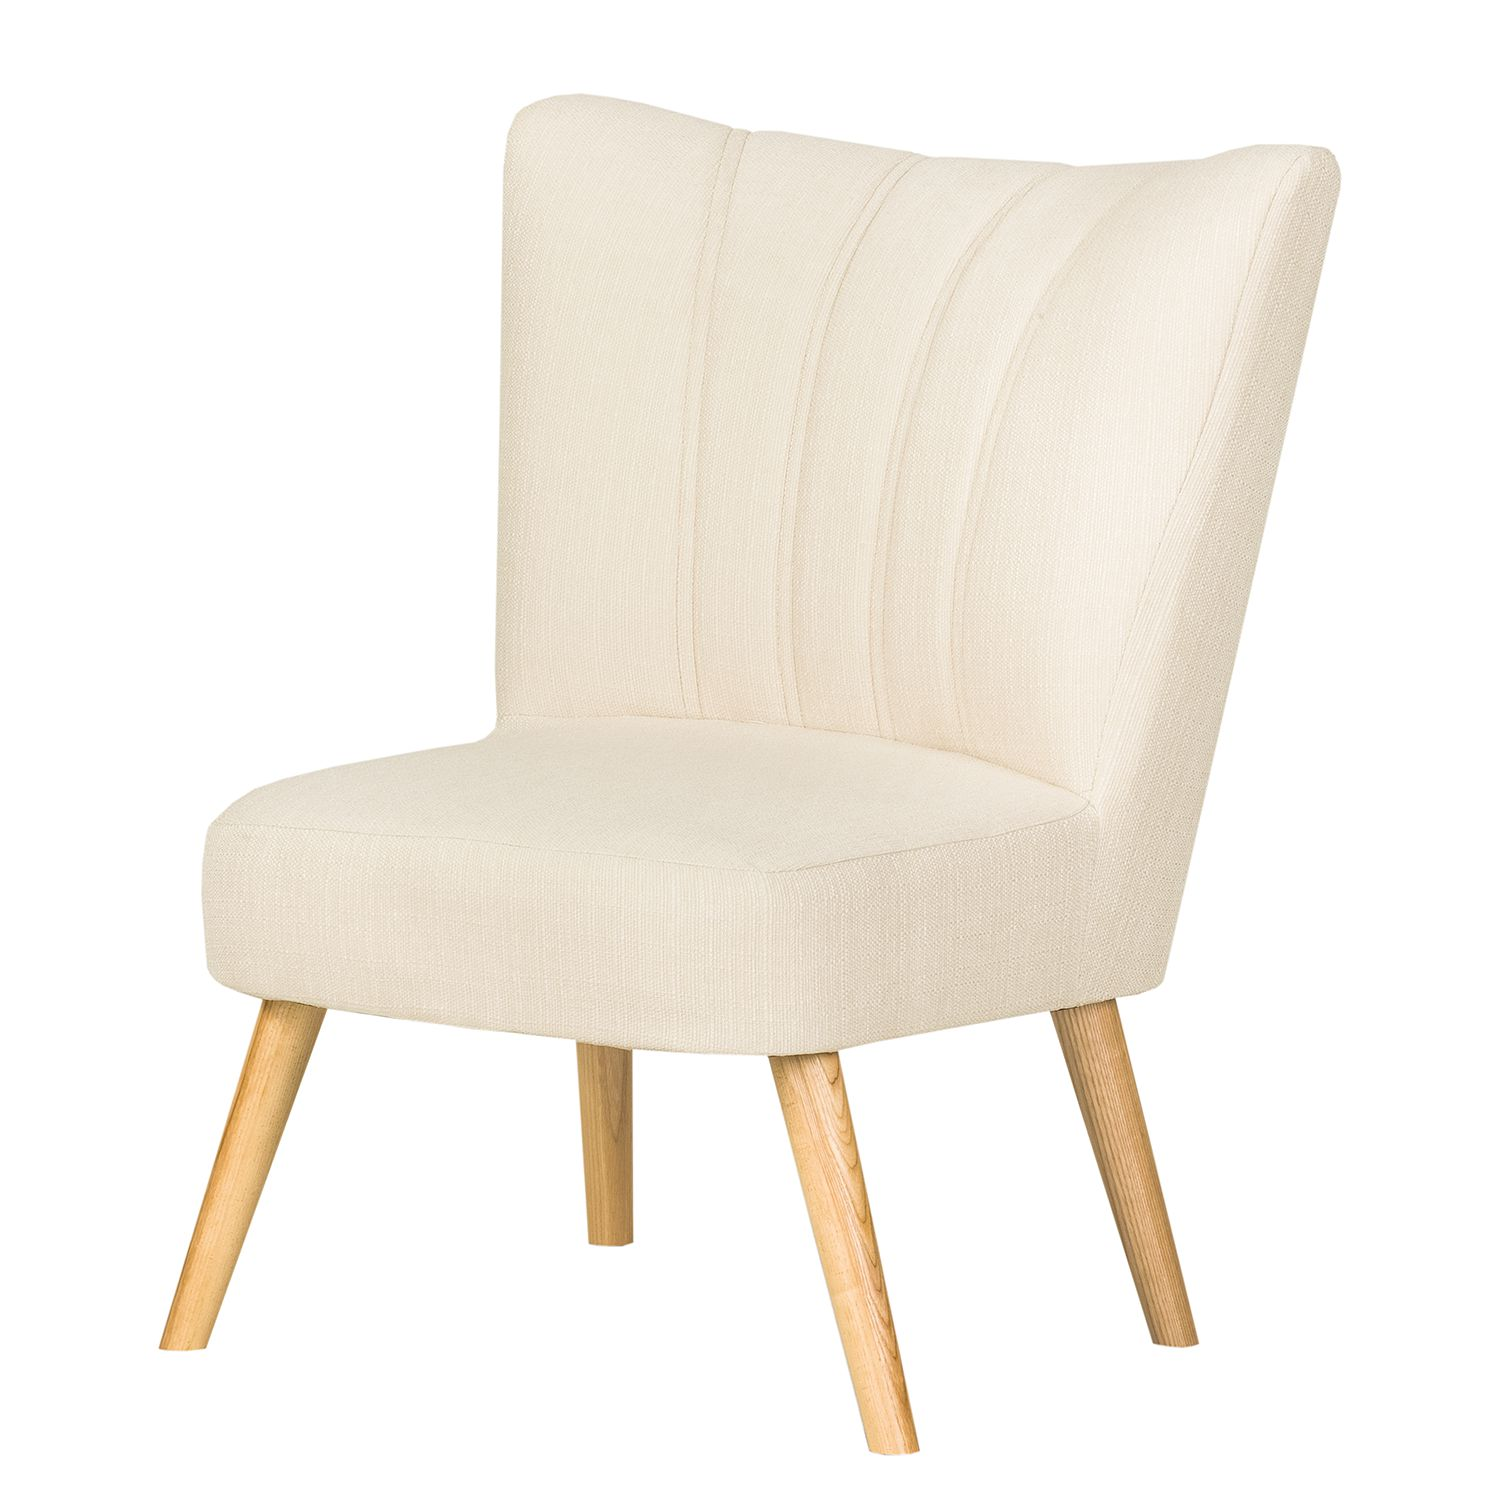 Sessel Oona II - Webstoff - Creme, kollected by Johanna